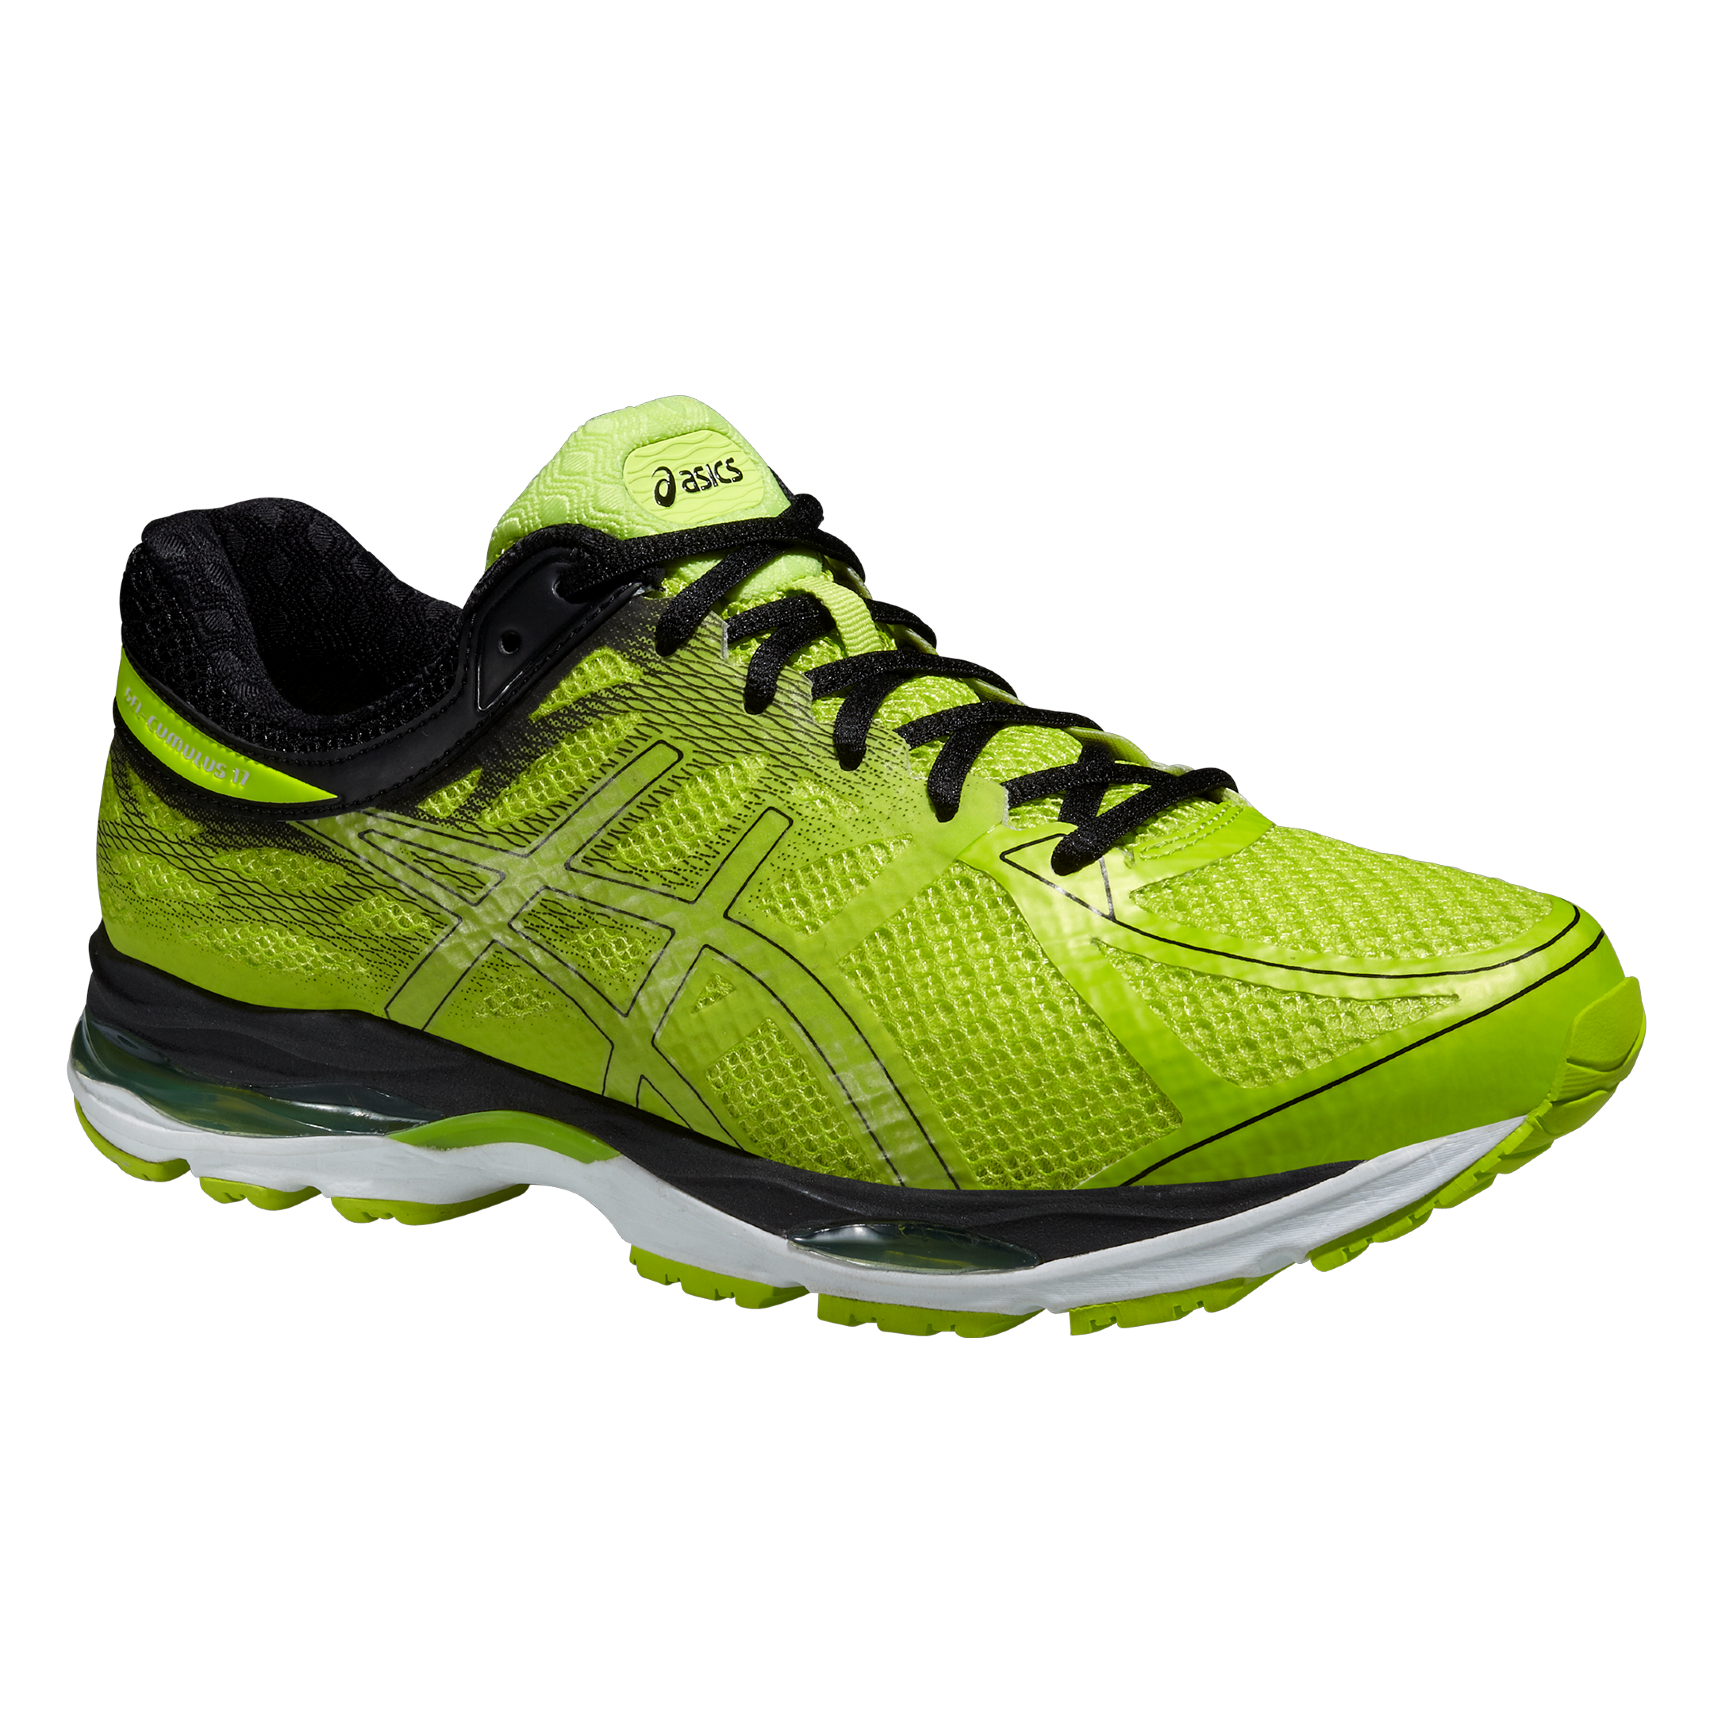 asics shoes jalandhar is in which states is abortion legal 66033